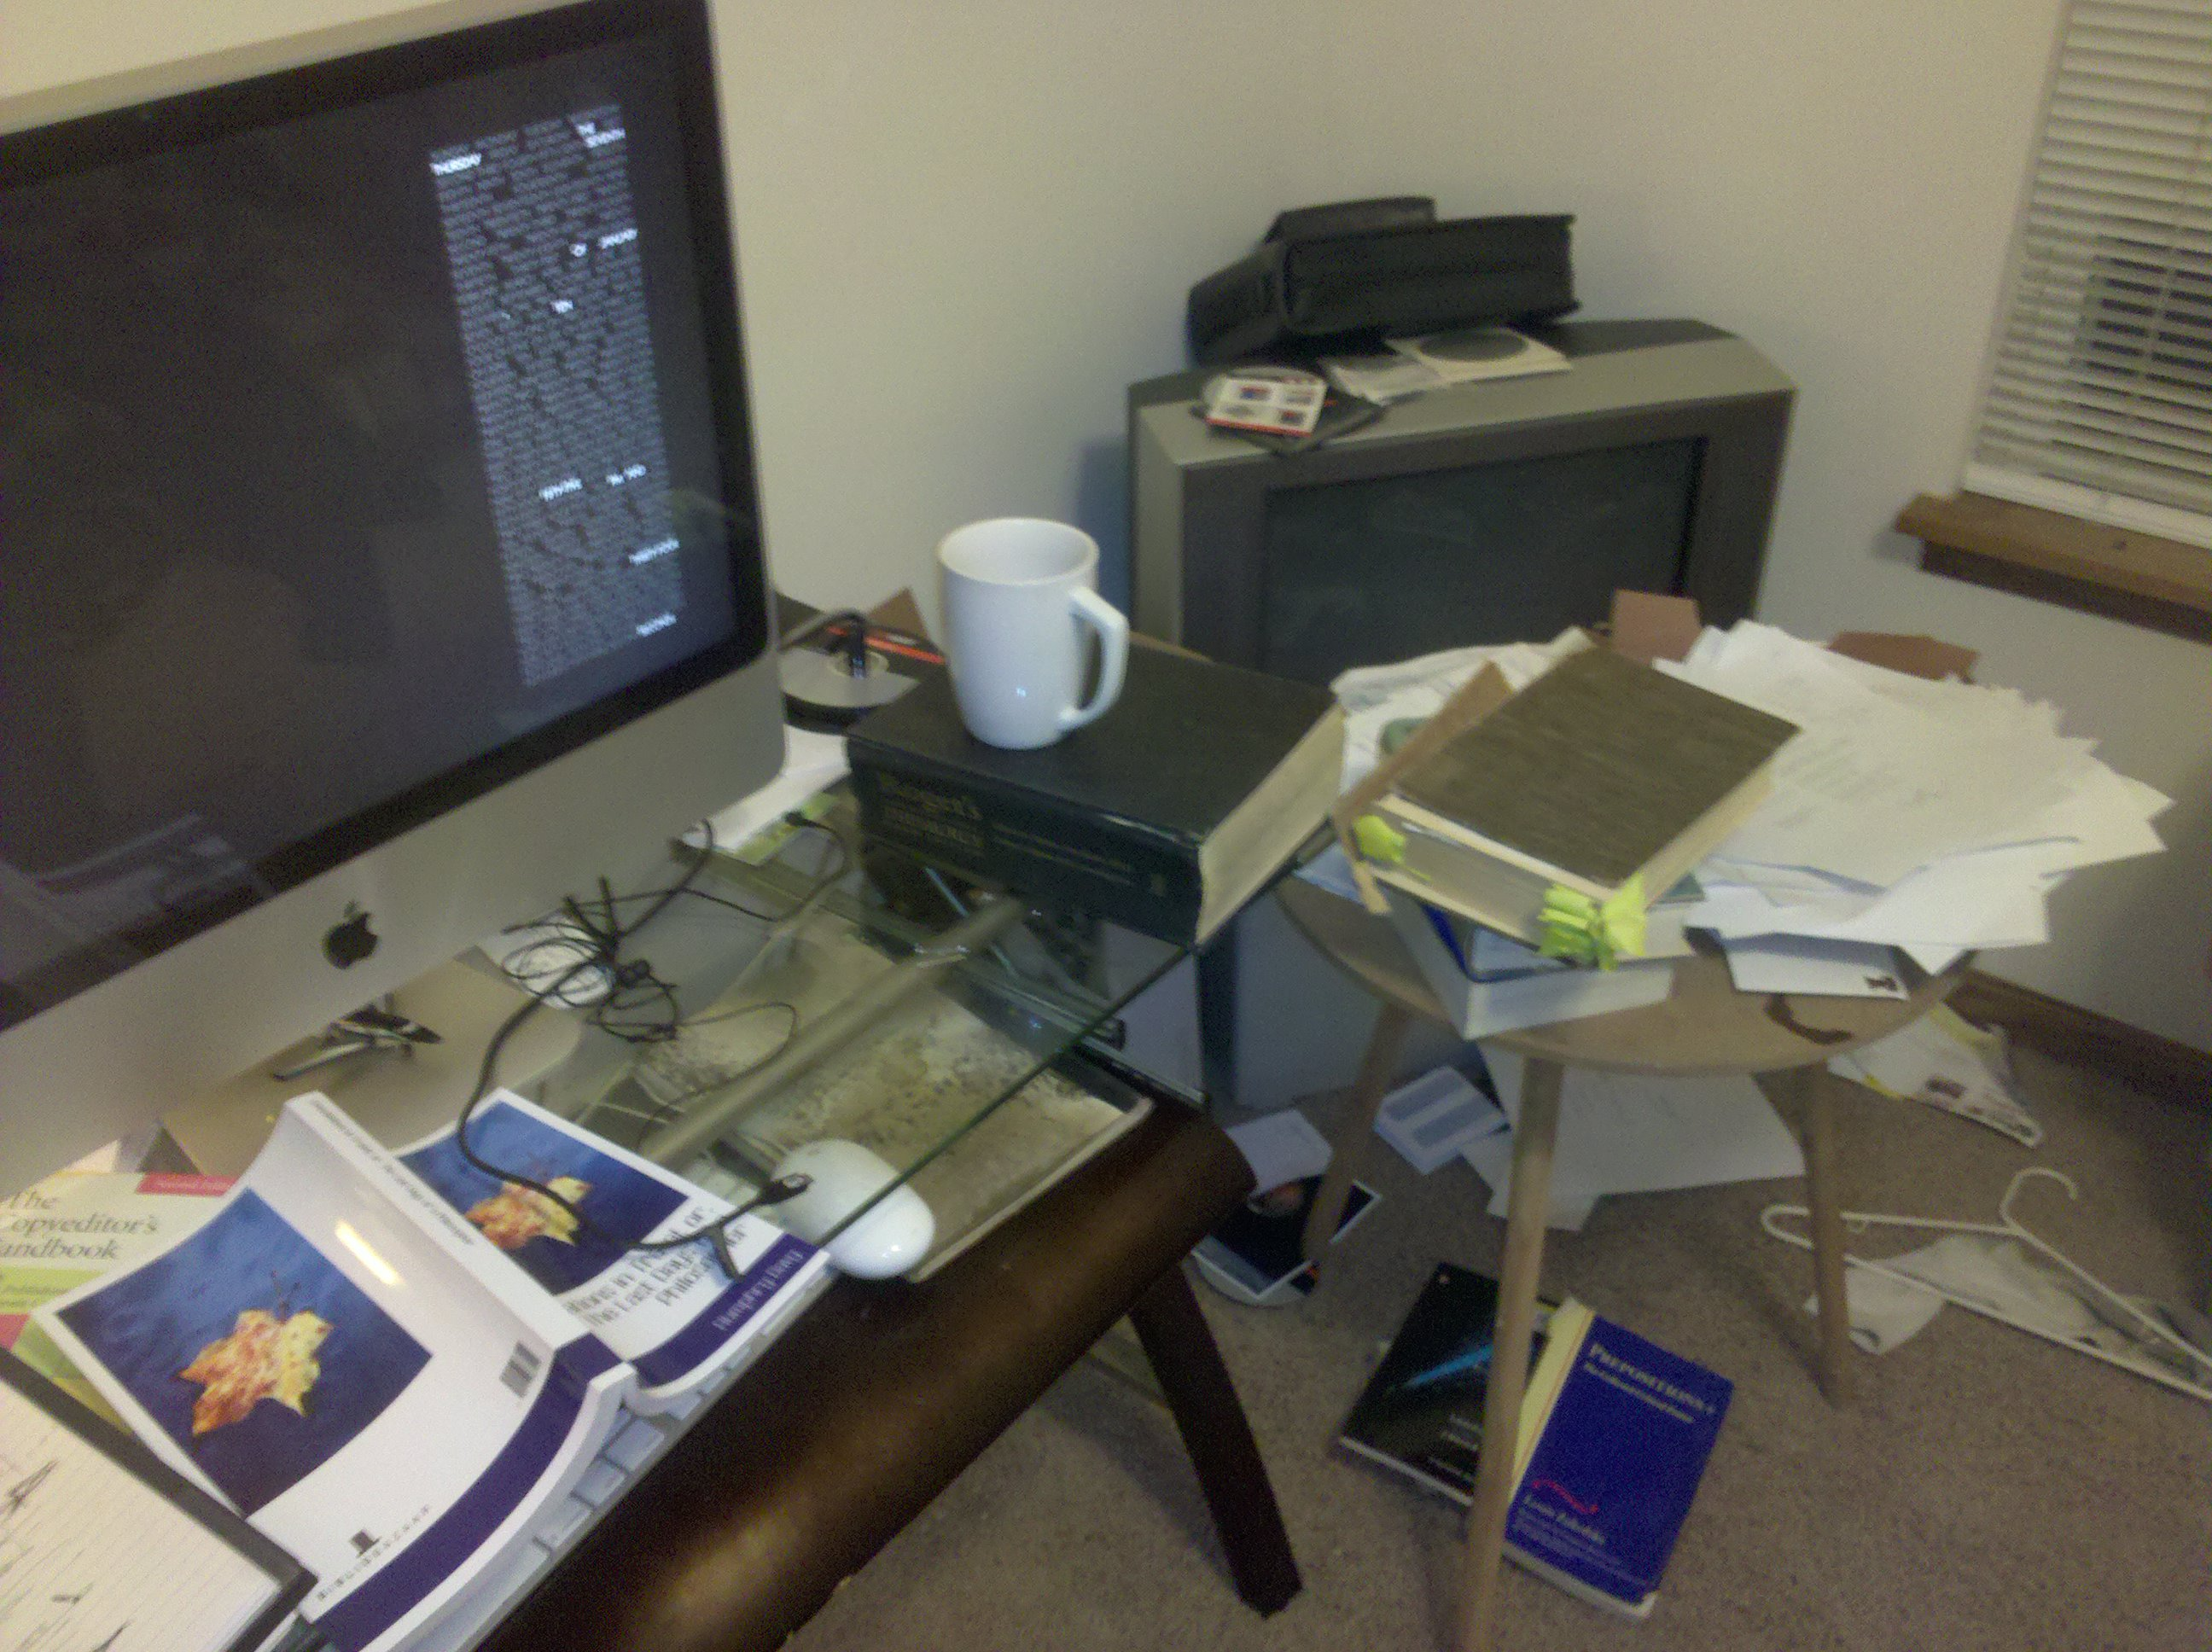 A desk and table buried uner a flurry of paperwork, both personal and professional